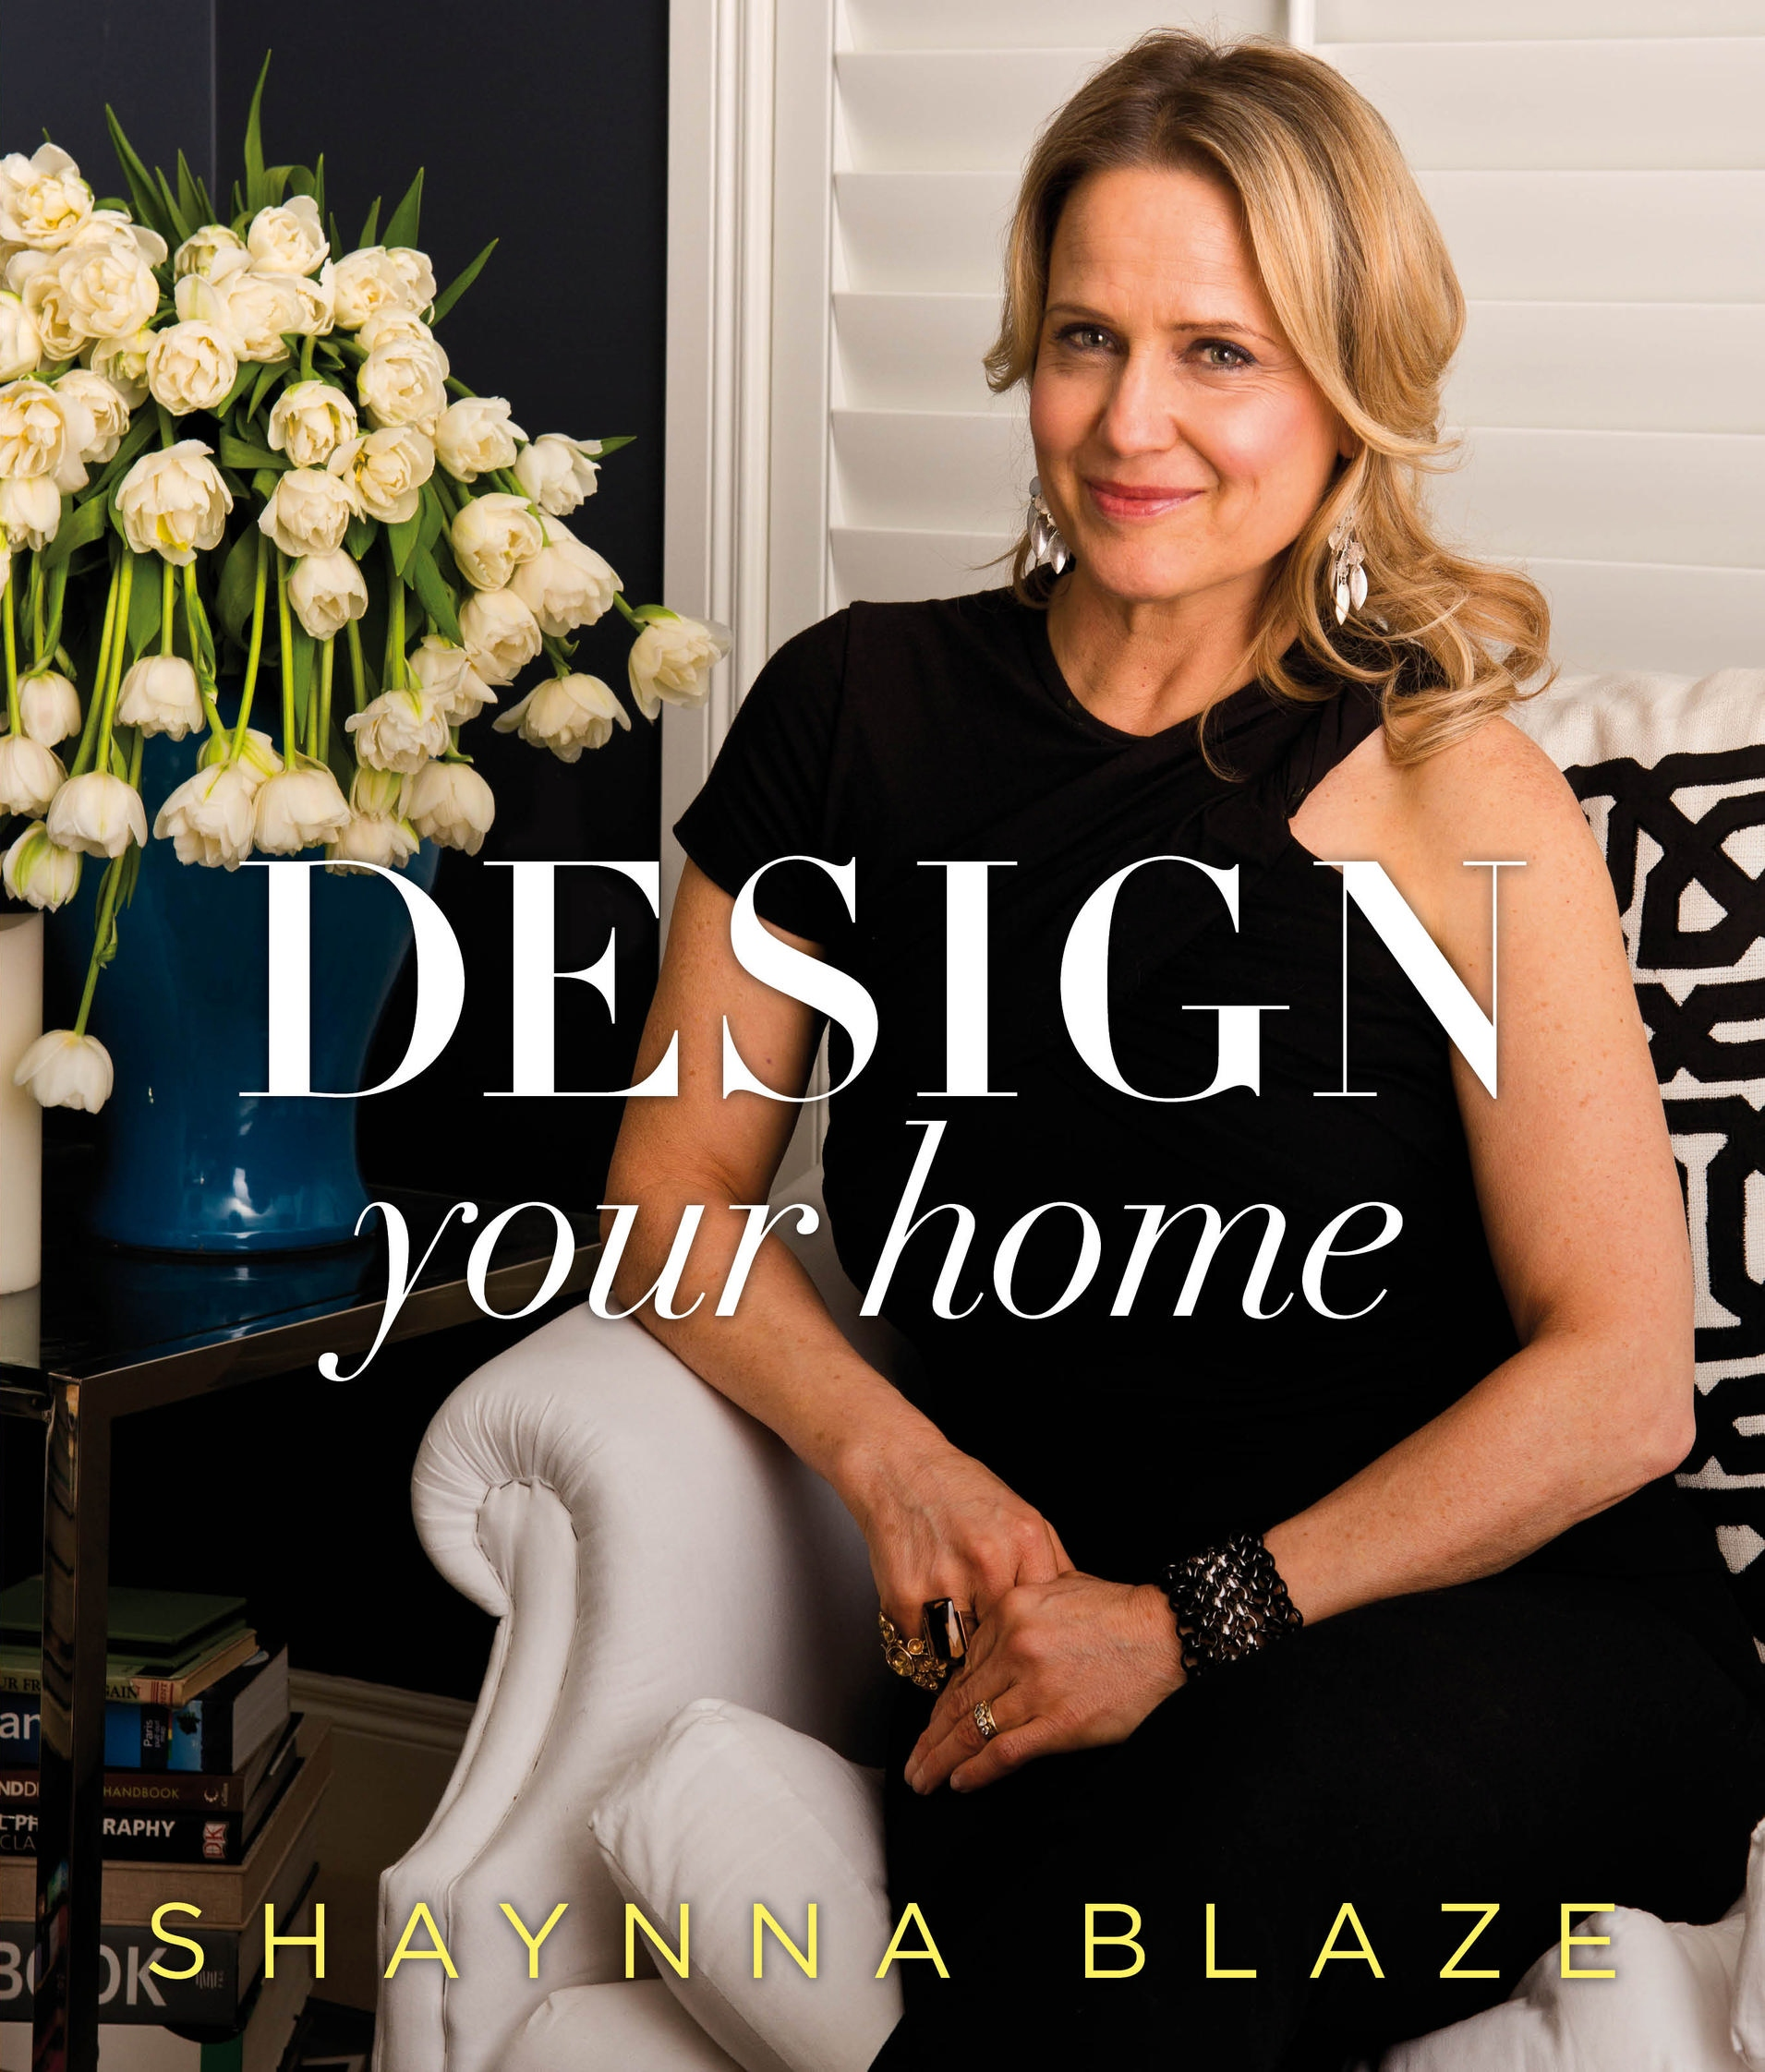 Shaynna Blaze Design Your Home Book